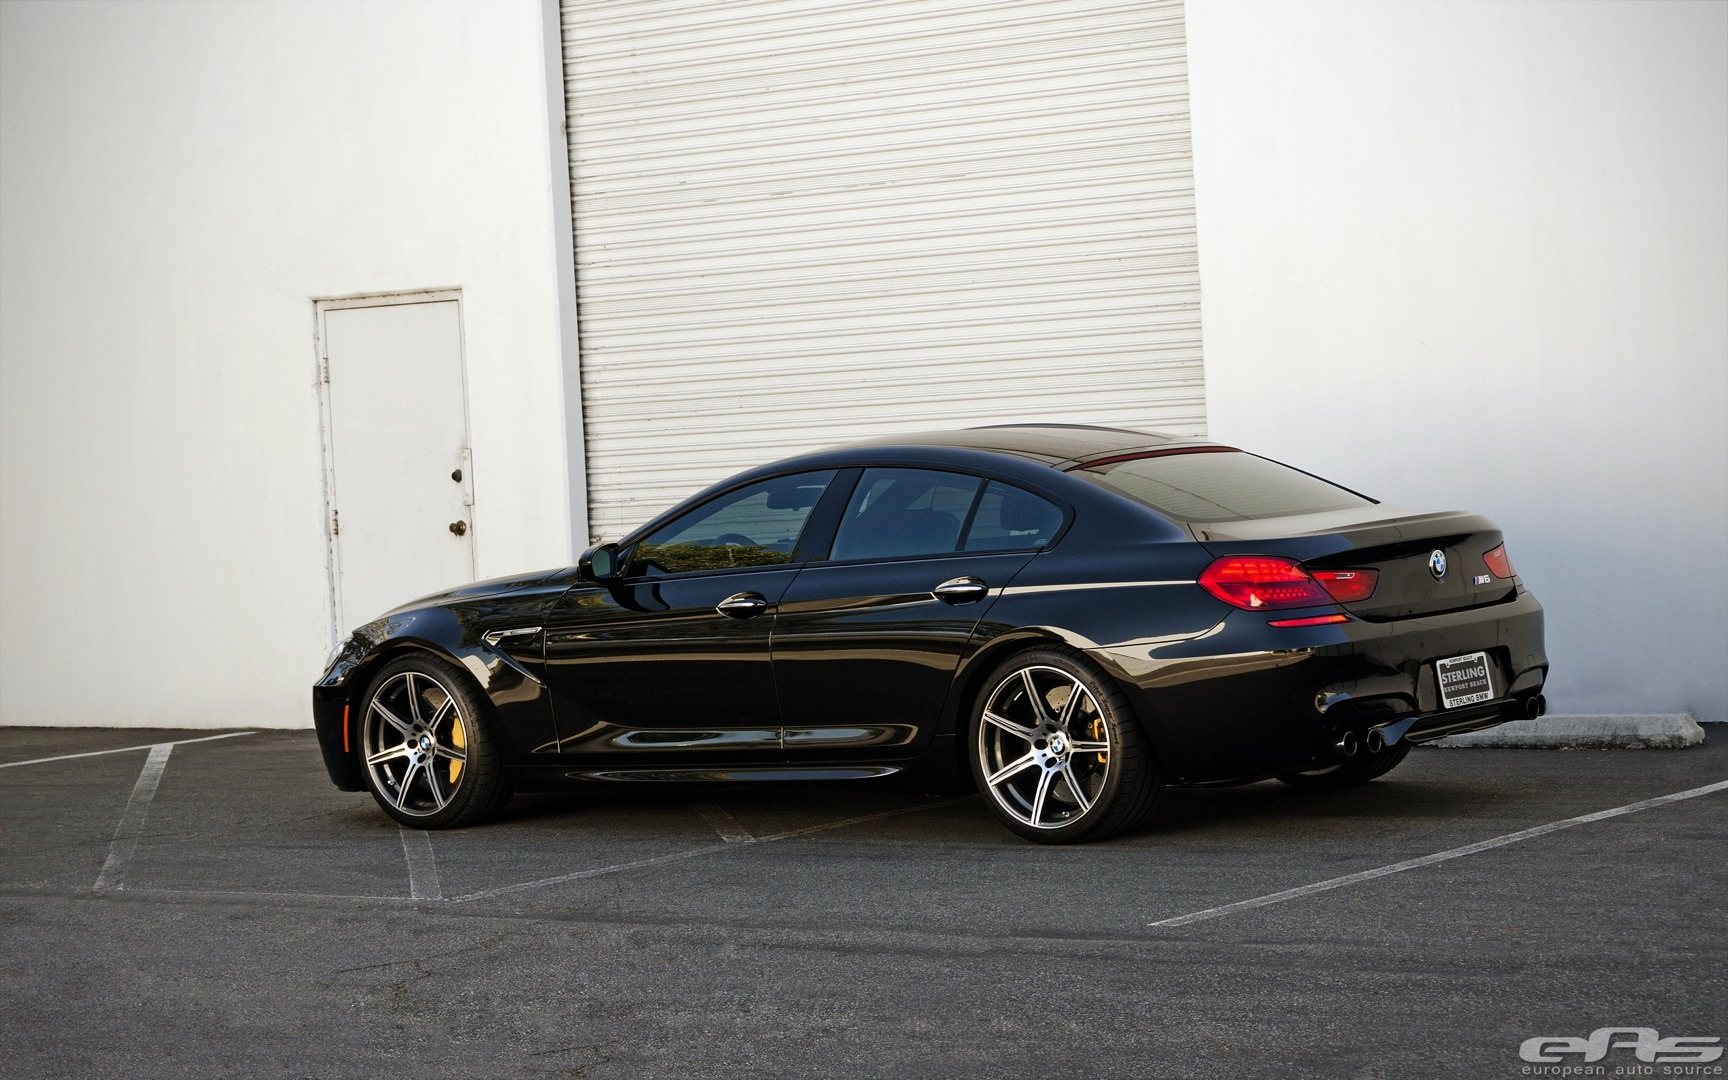 2015 Bmw M6 Gran Coupe #3